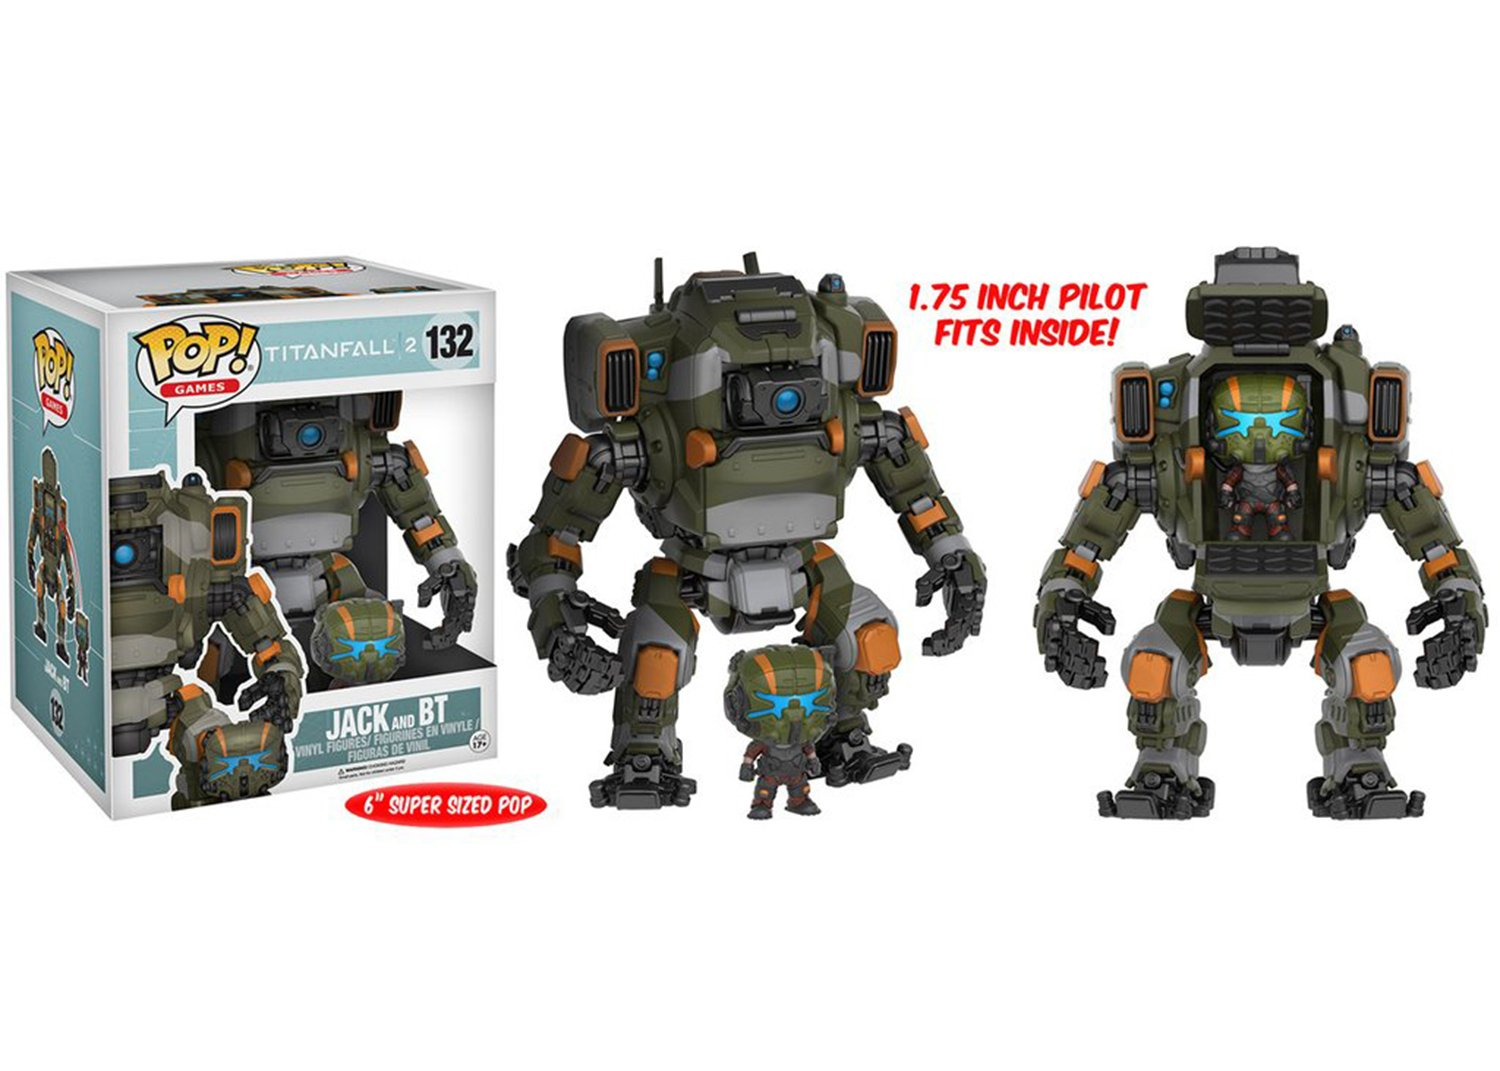 Mozlly Multipack - Funko Games Titanfall 2 Jack Pop! Vinyl Figure and BT Titan Vehicle - 6 inch Action Figure - Collectible Toy (2pc Set) (Pack of 6) - Item #S120079_X6